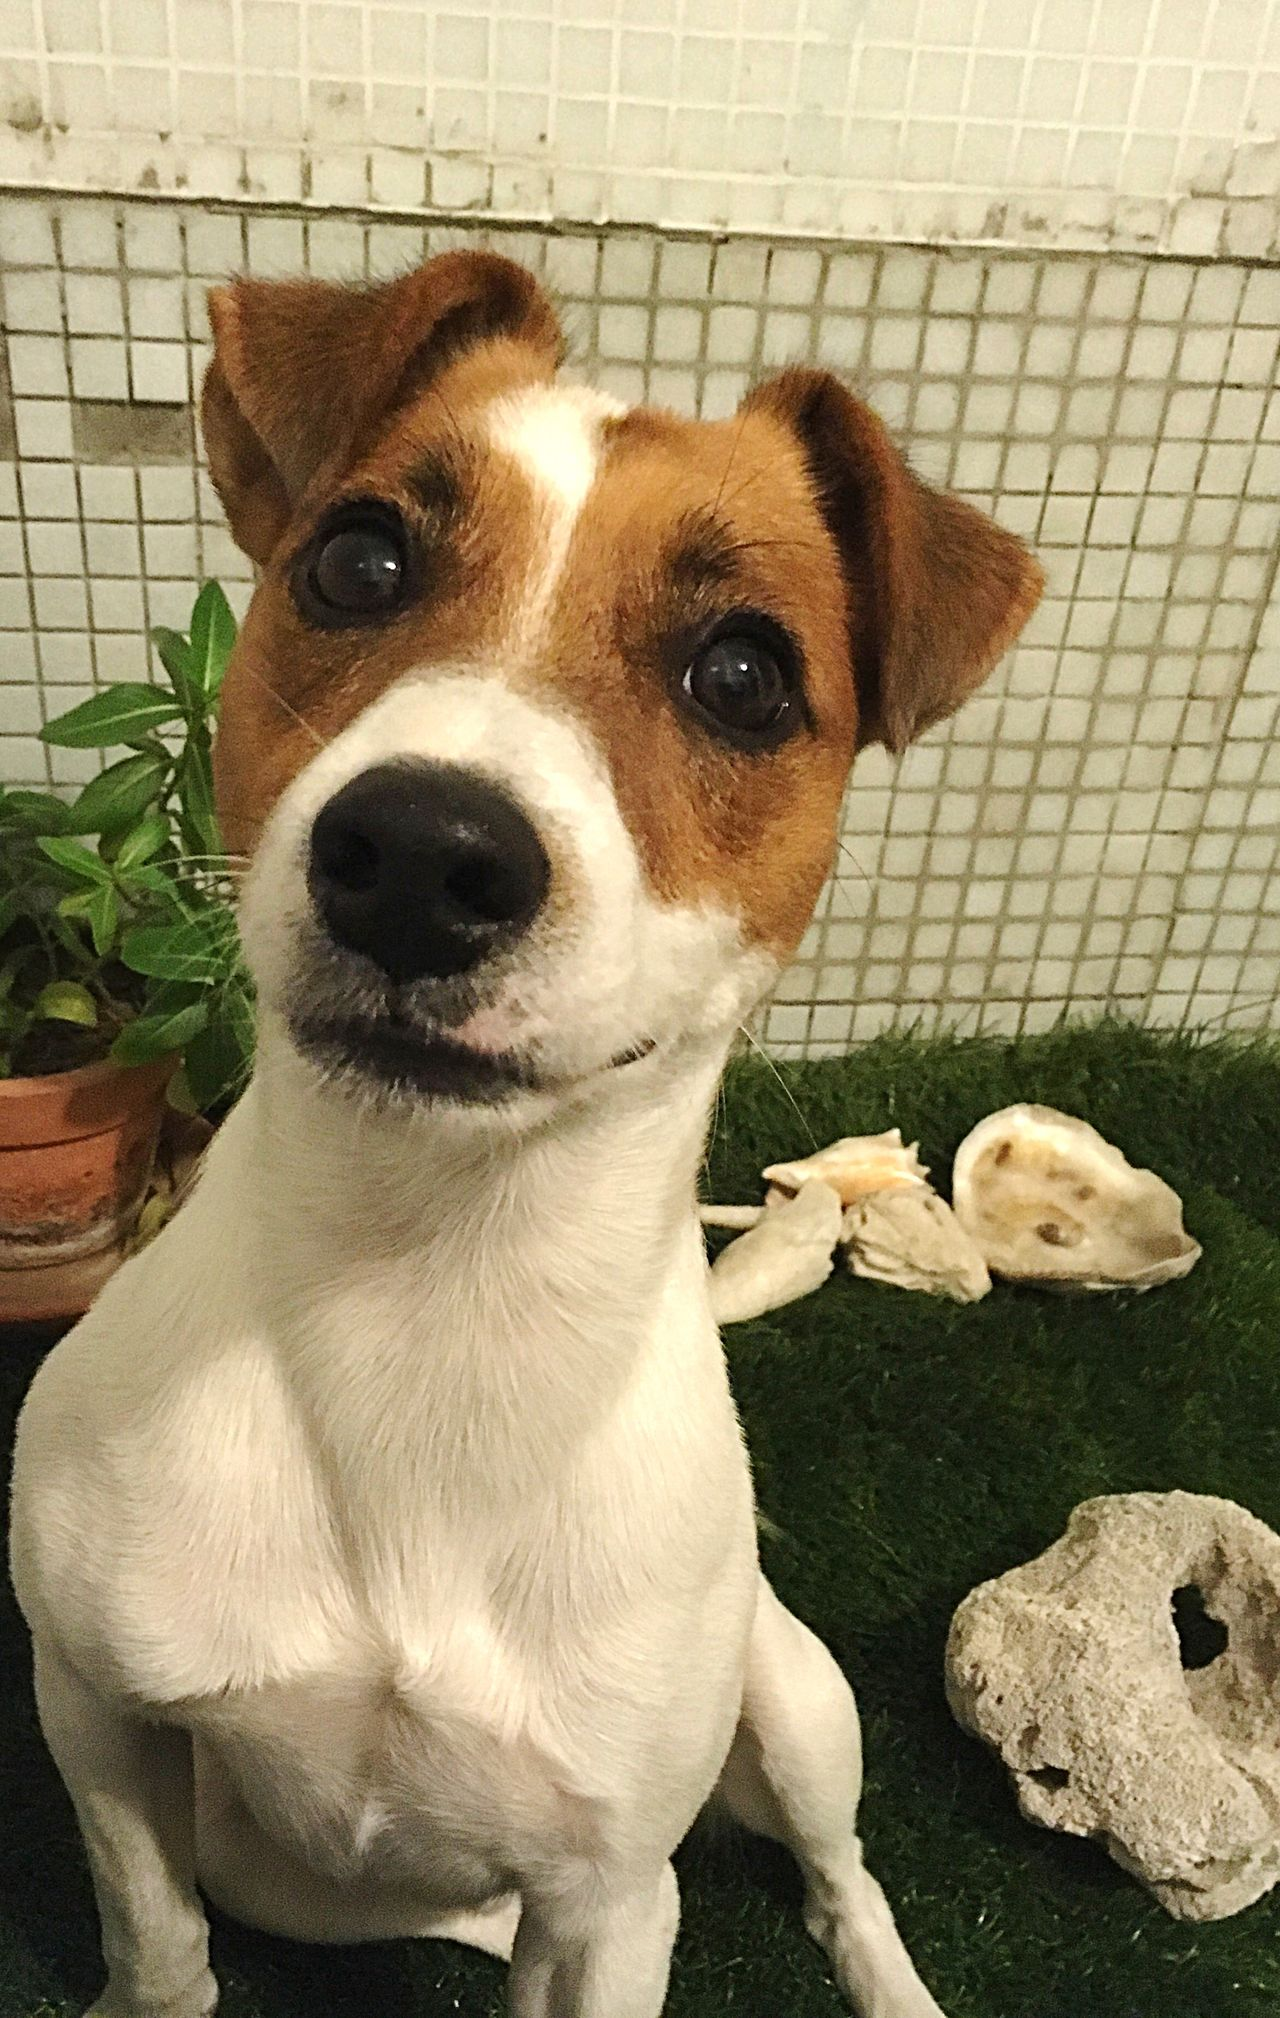 Dog Pets Looking At Camera Jackrussell EyeEmNewHere Domestic Animals Inconditional Love